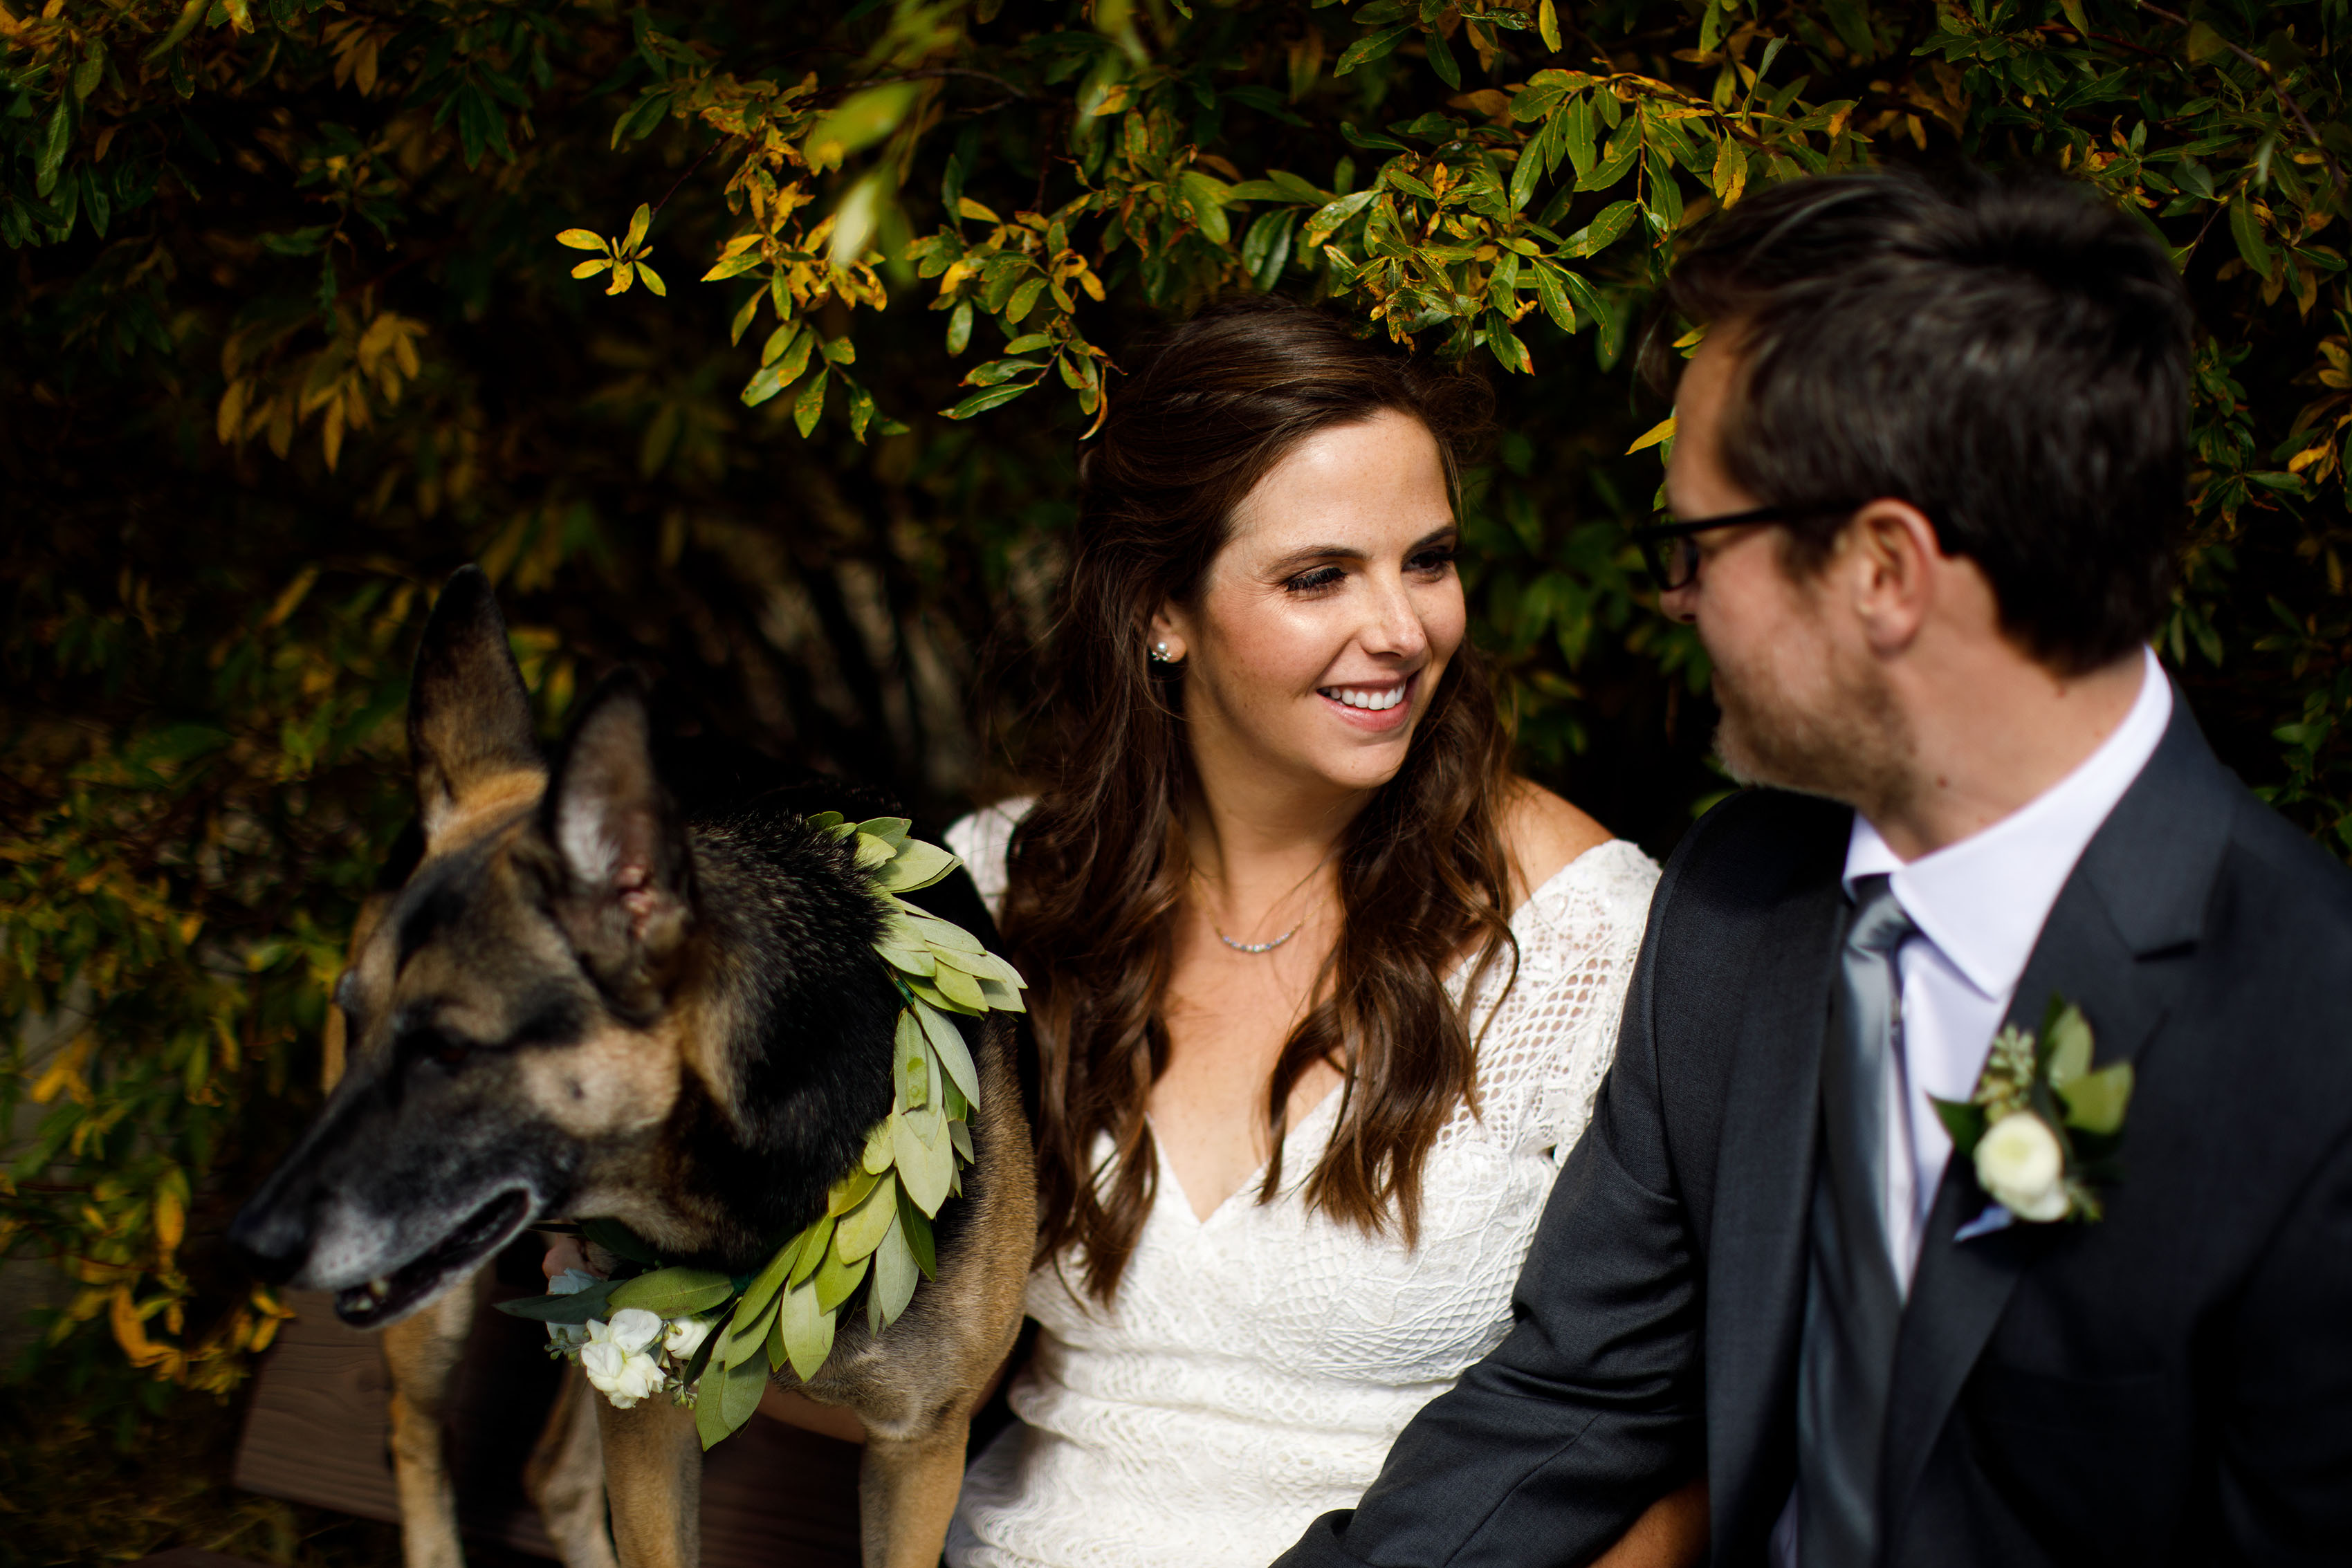 The couple share a moment as their dog wears a floral dog collar before the wedding